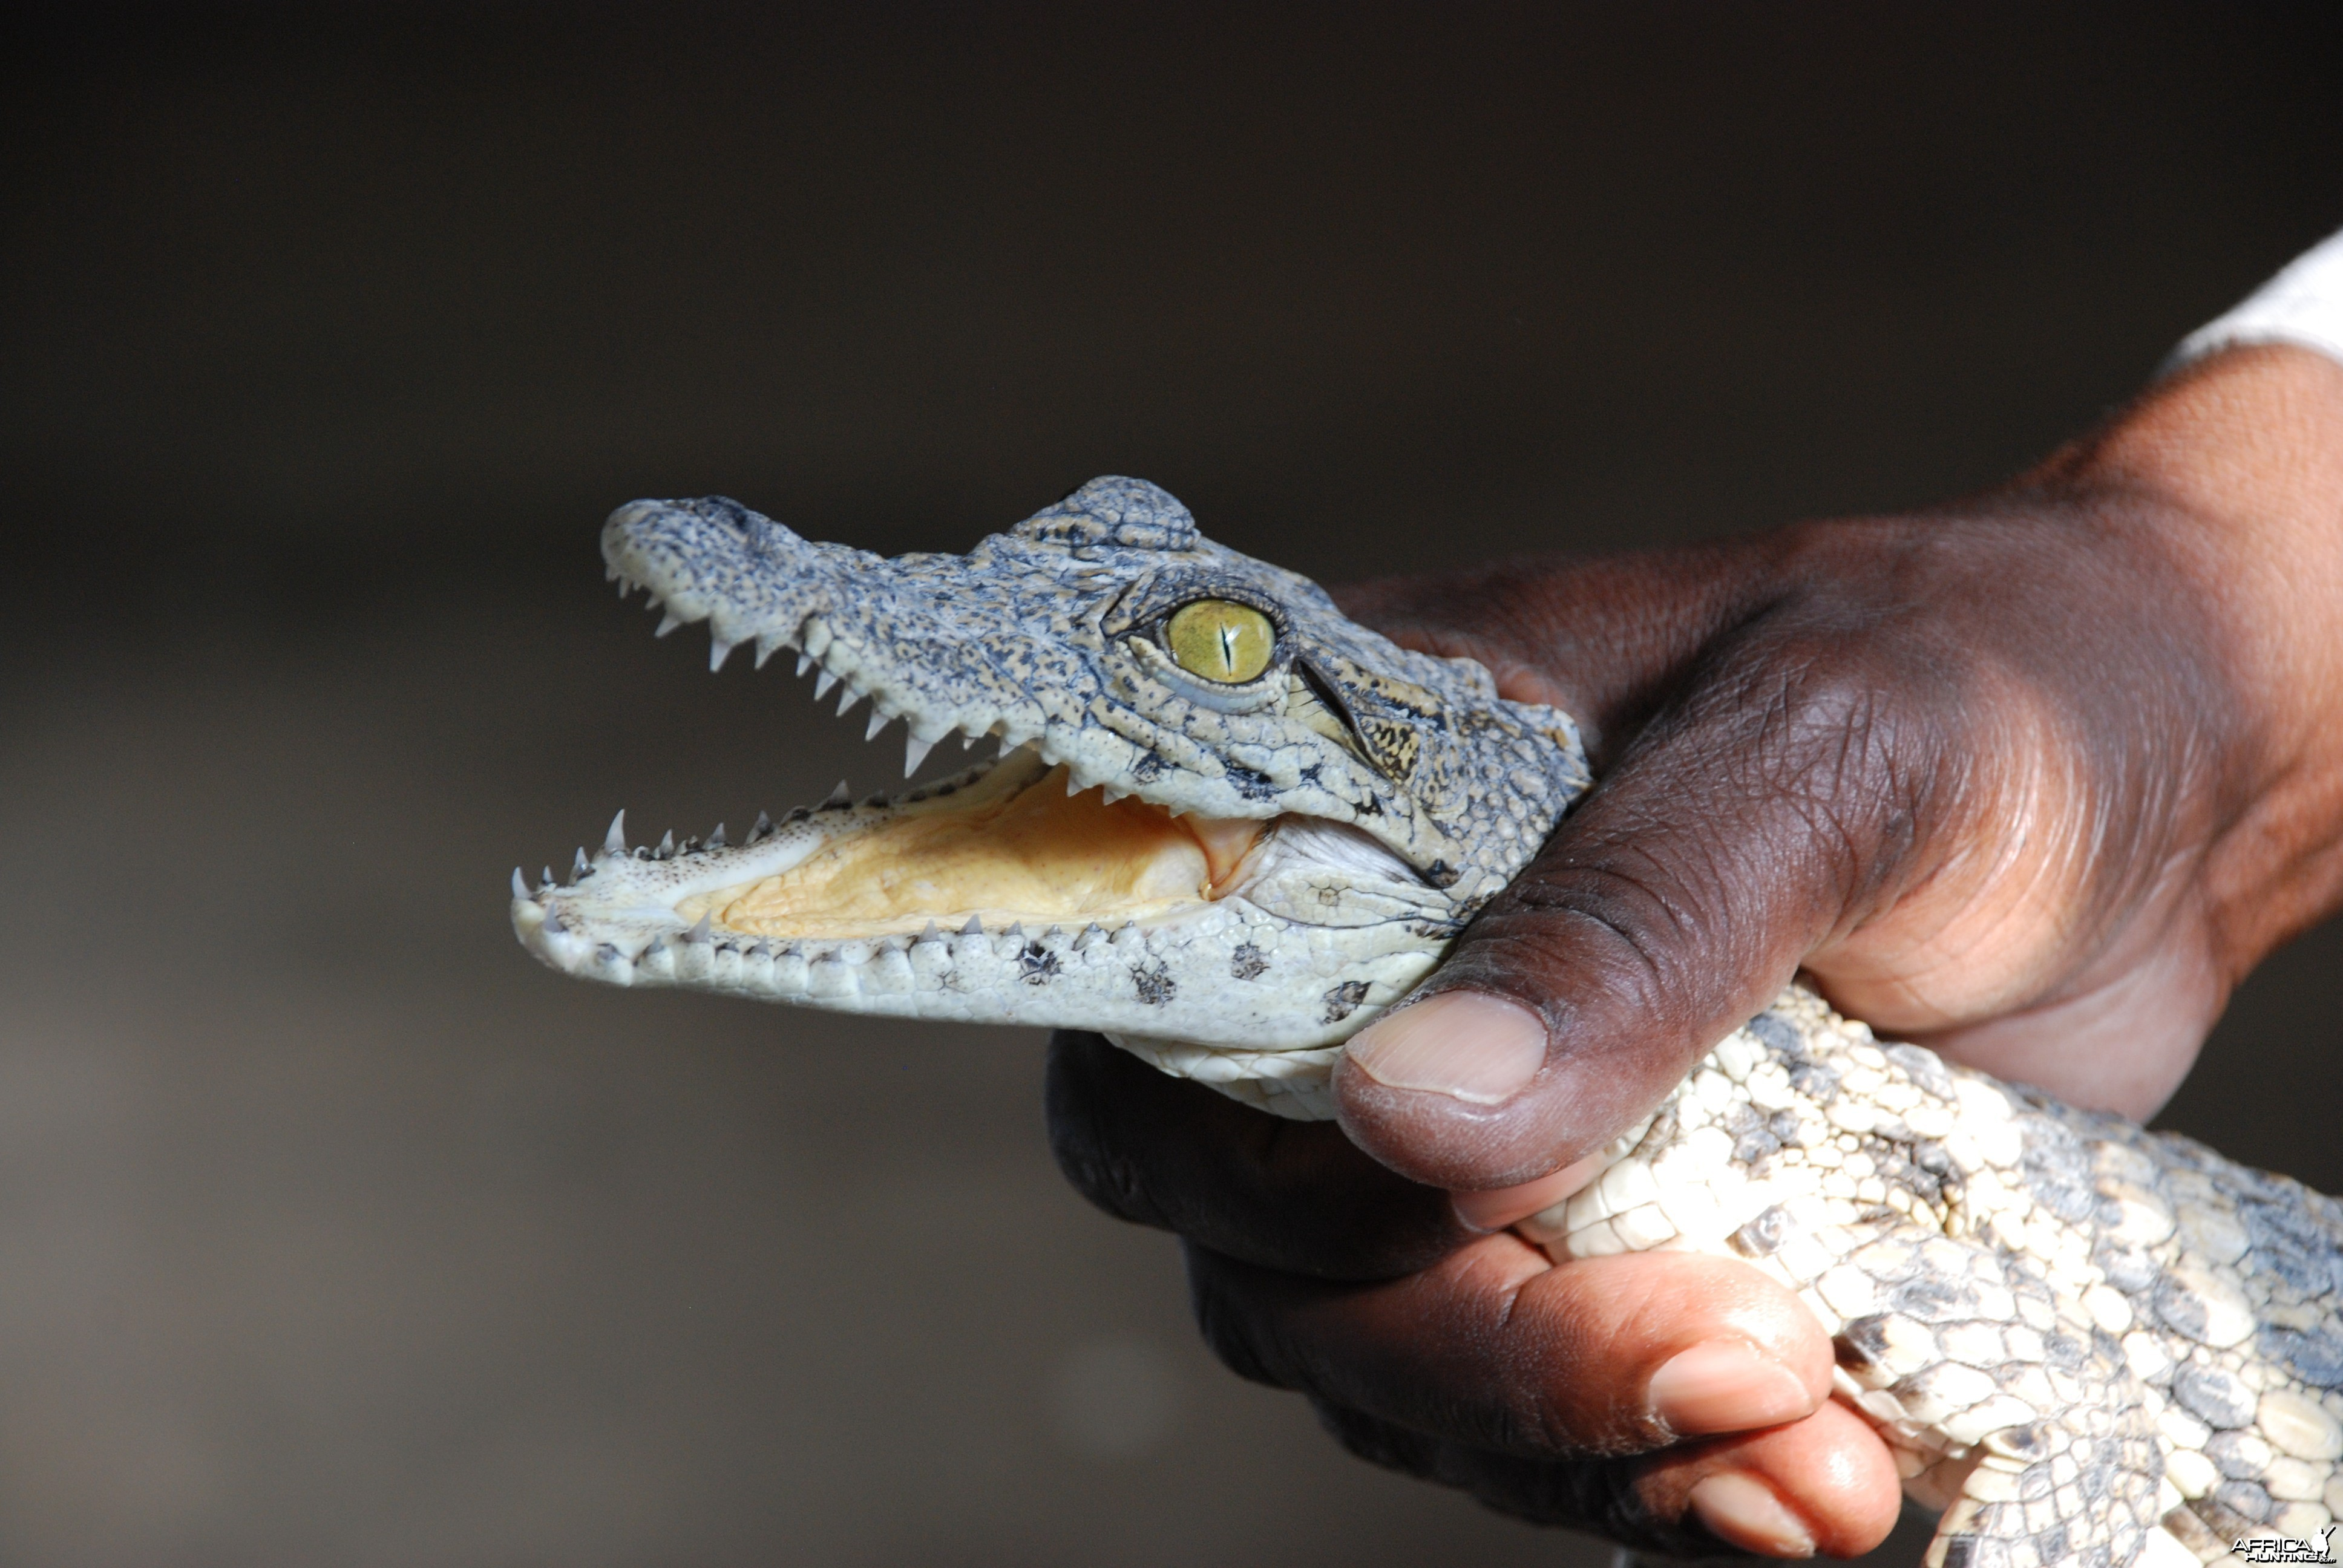 Small Croc Namibia